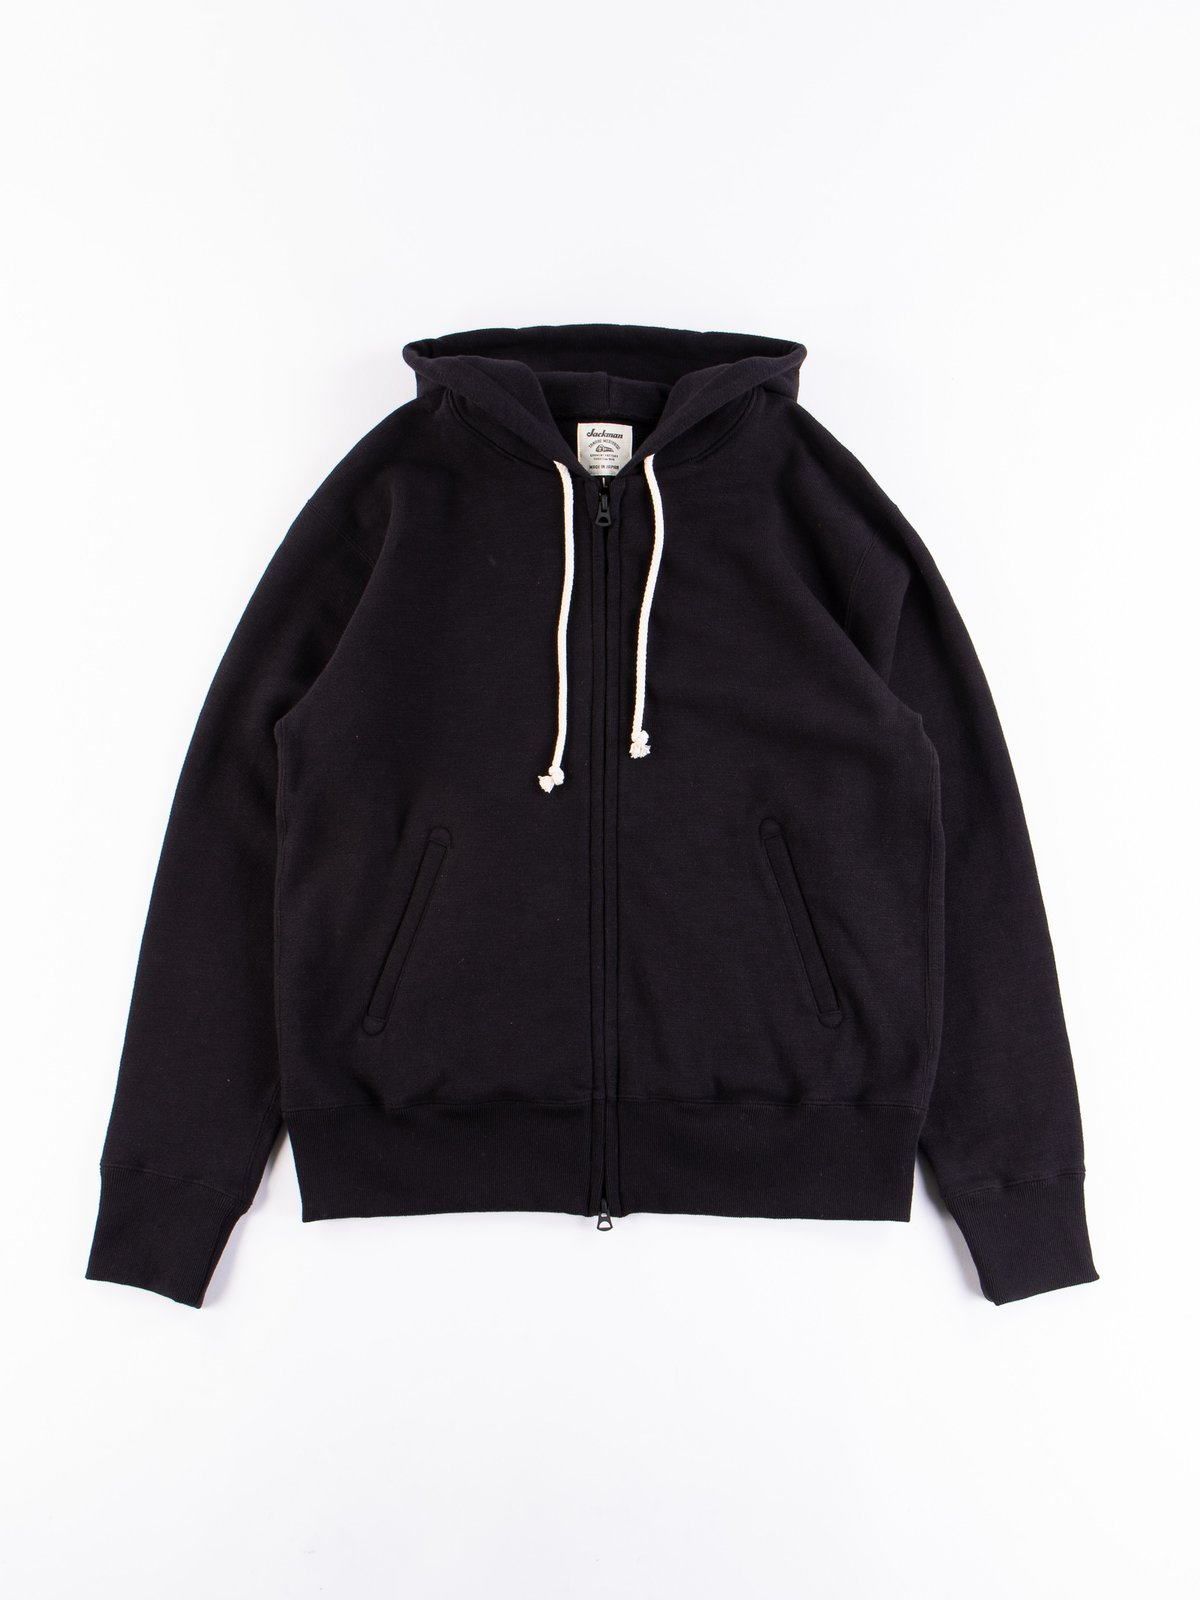 Black GG Full Zip Sweatshirt - Image 1